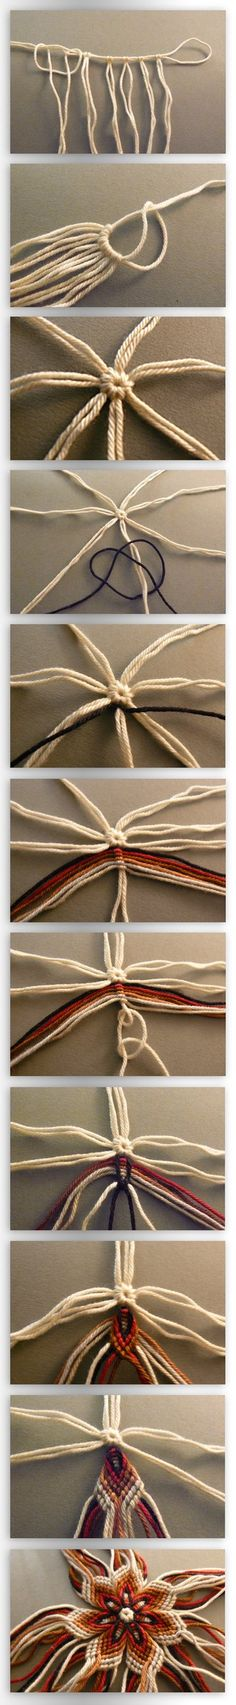 Pouch Tutorial Part I (Bottom) by nimuae on deviantART